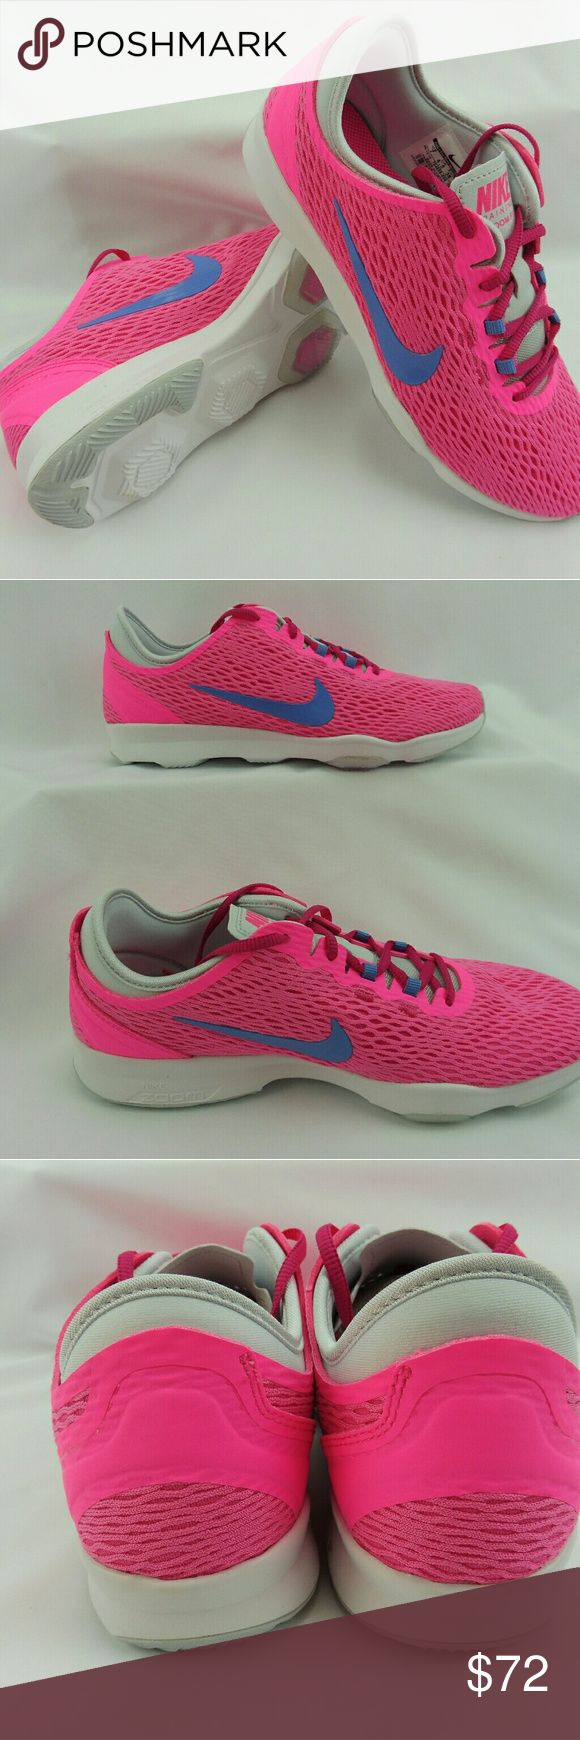 Nike, NWT, WMNS NIKE ZOOM FIT, PINK Nike, NWT, WMNS NIKE ZOOM FIT, PINK, New new in box, never used, comfortable and great looking Nike Shoes Sneakers